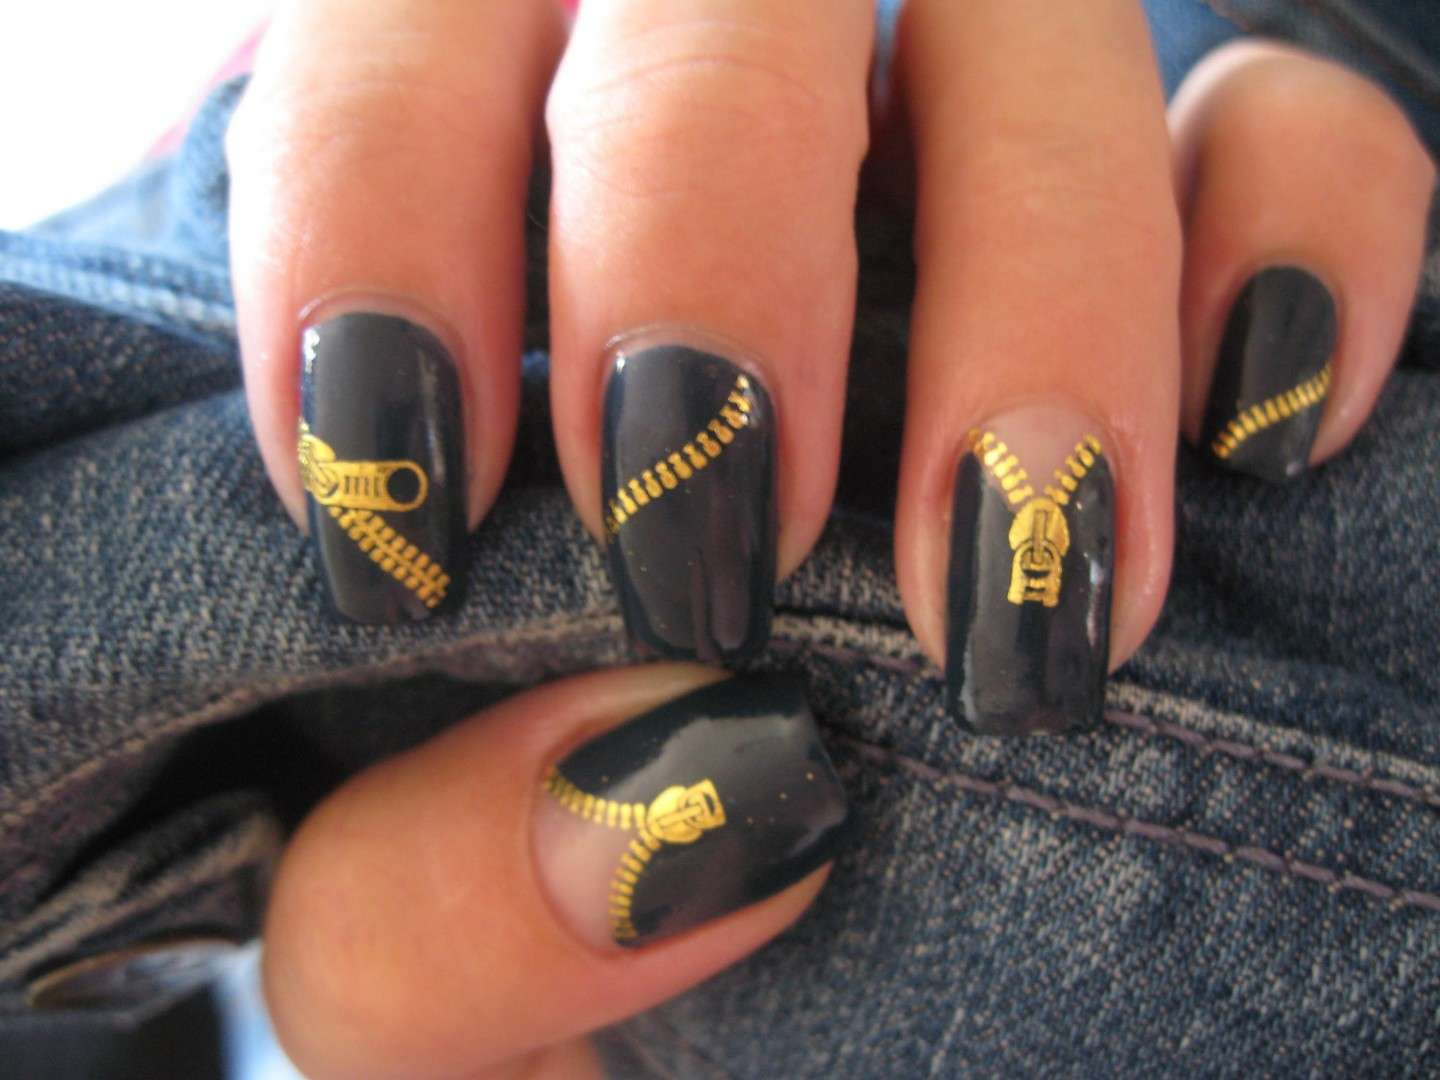 Le zipper nails